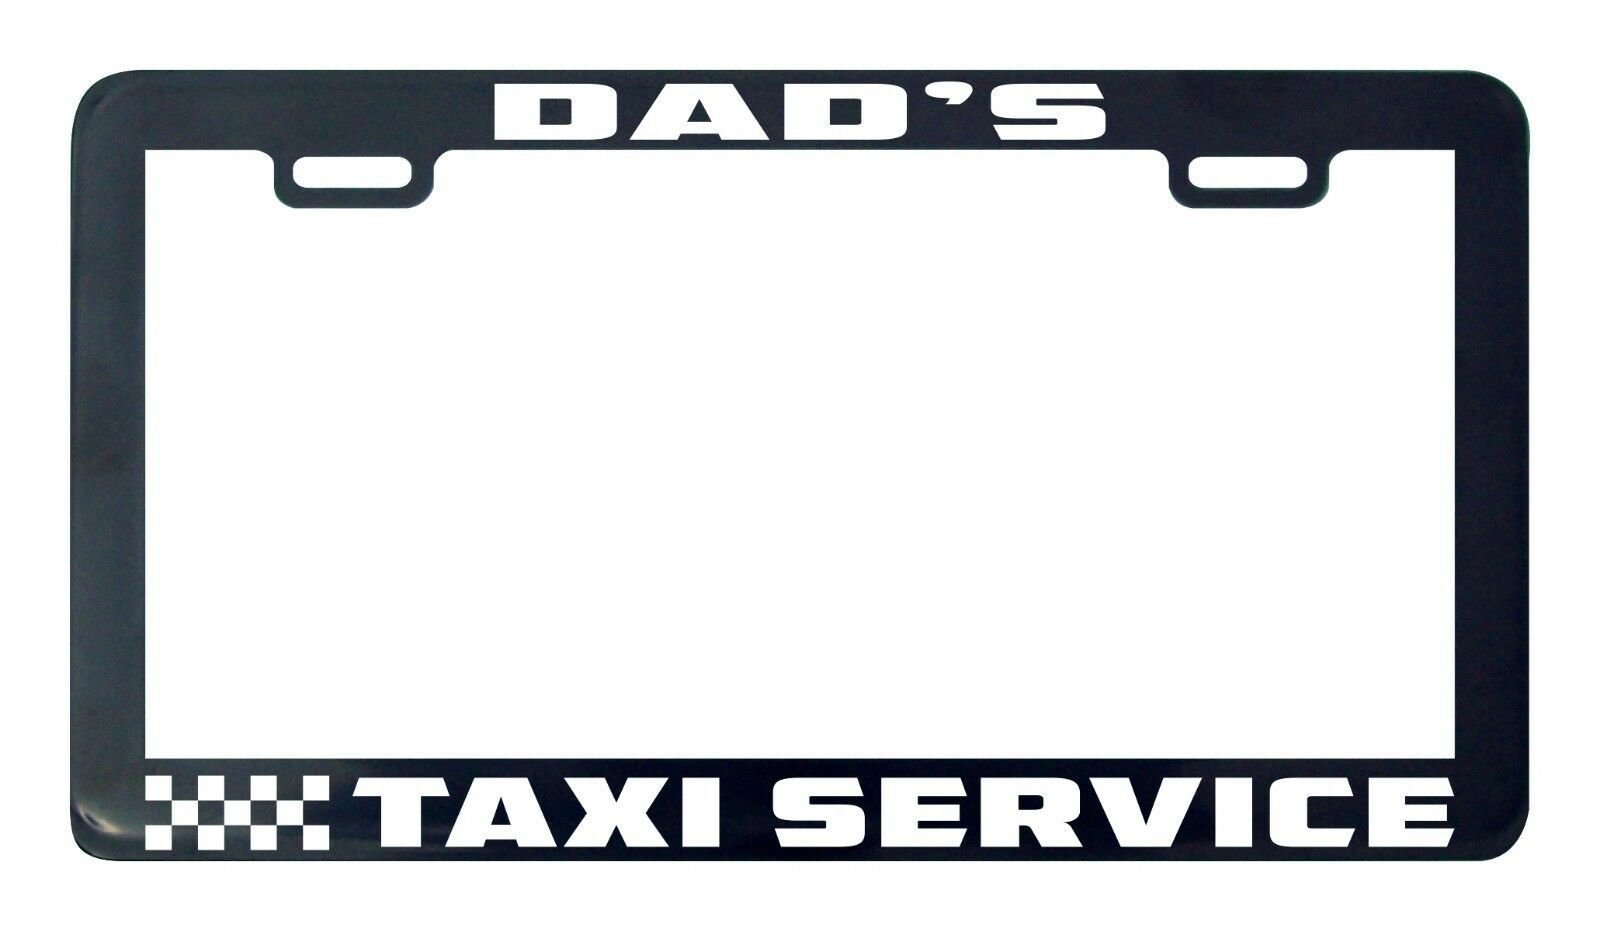 Primary image for Dad's taxi service license plate frame holder tag